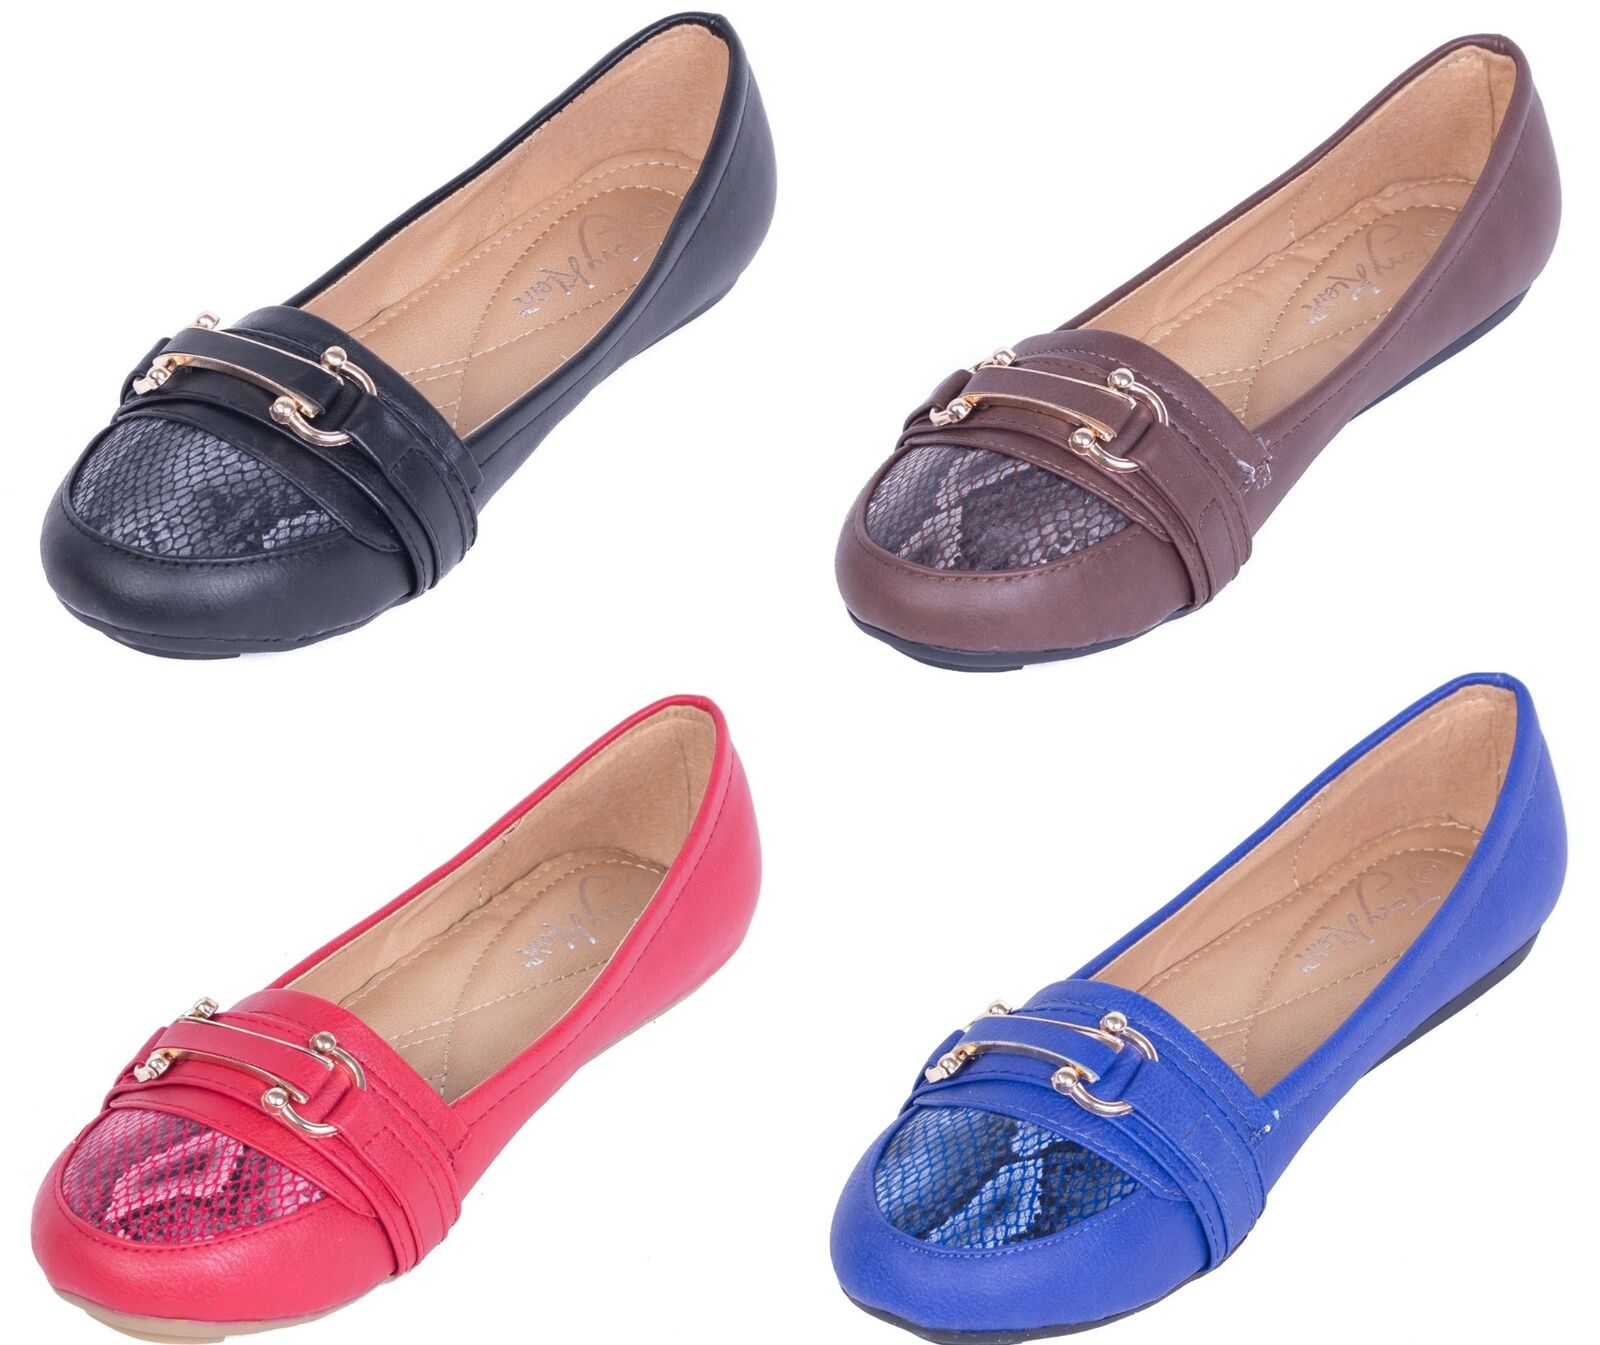 Women Ballerina Ballet Flats, PU Leather Slip-Ons Shoes w/ Two Horseshoes Buckle